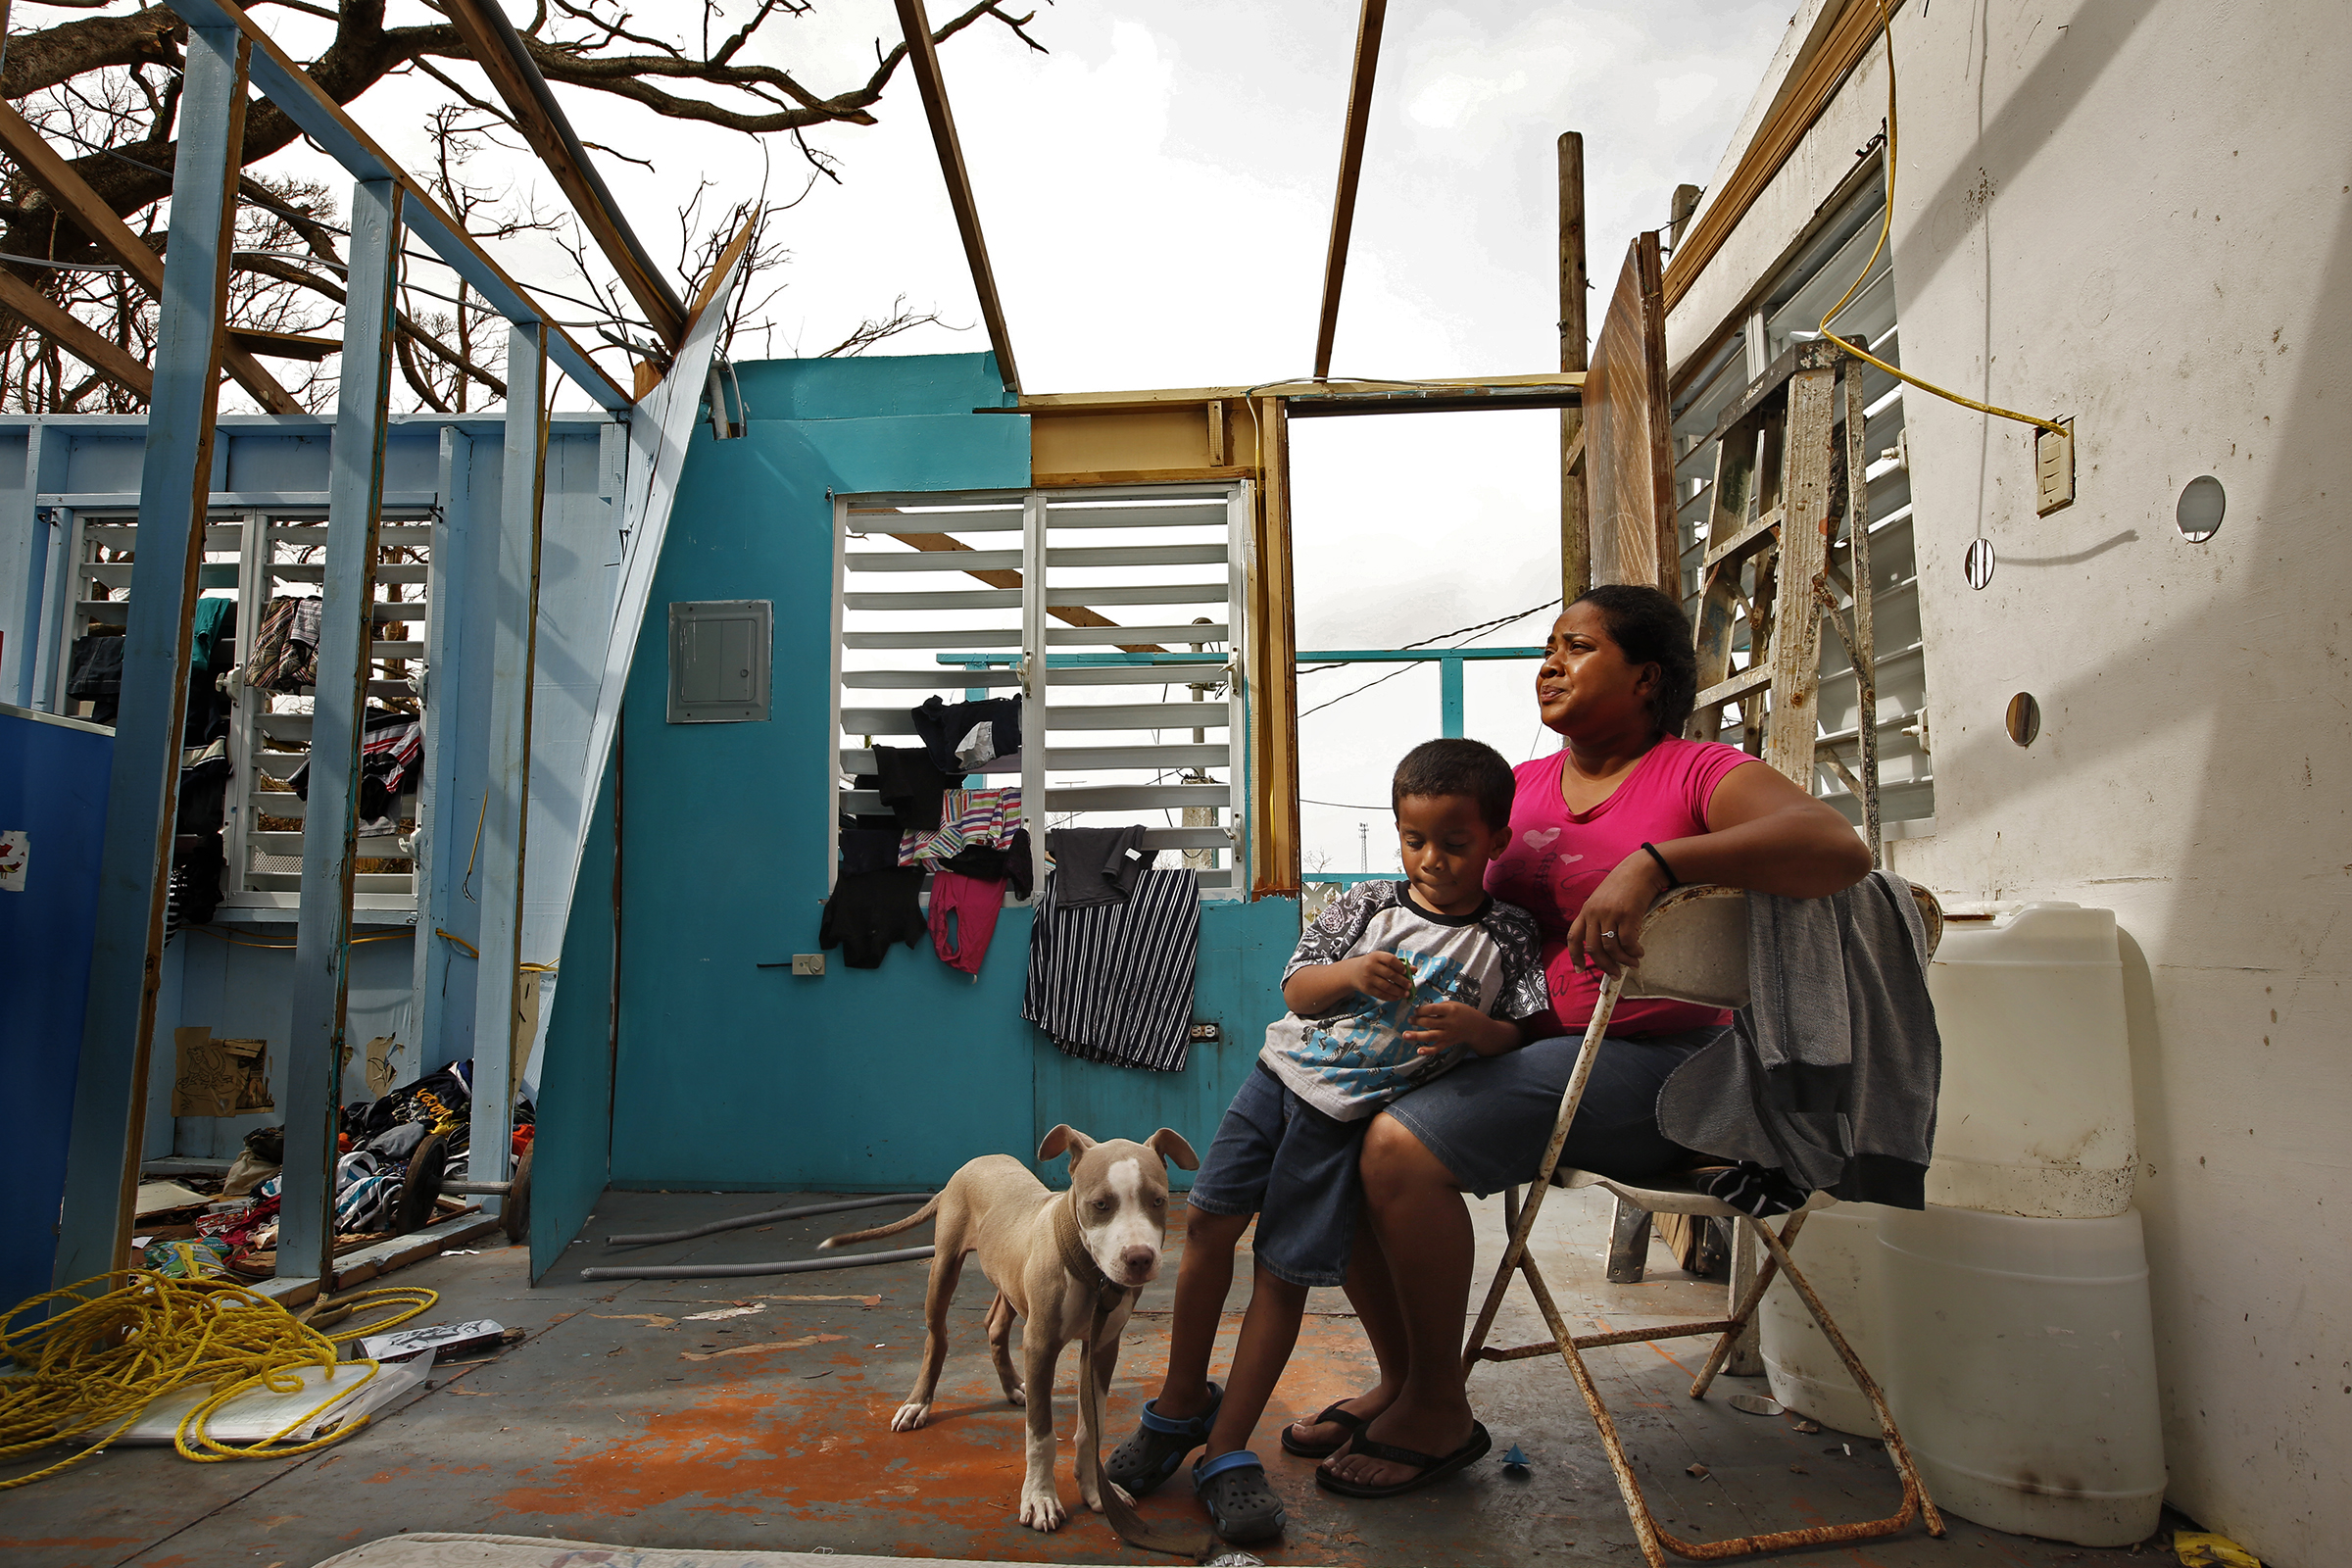 Heydee Perez, age 29, and her son, Yenel Calera, age 4 have not received any aid one week after Hurricane Maria. The roof of their home is gone and they have very little to eat.